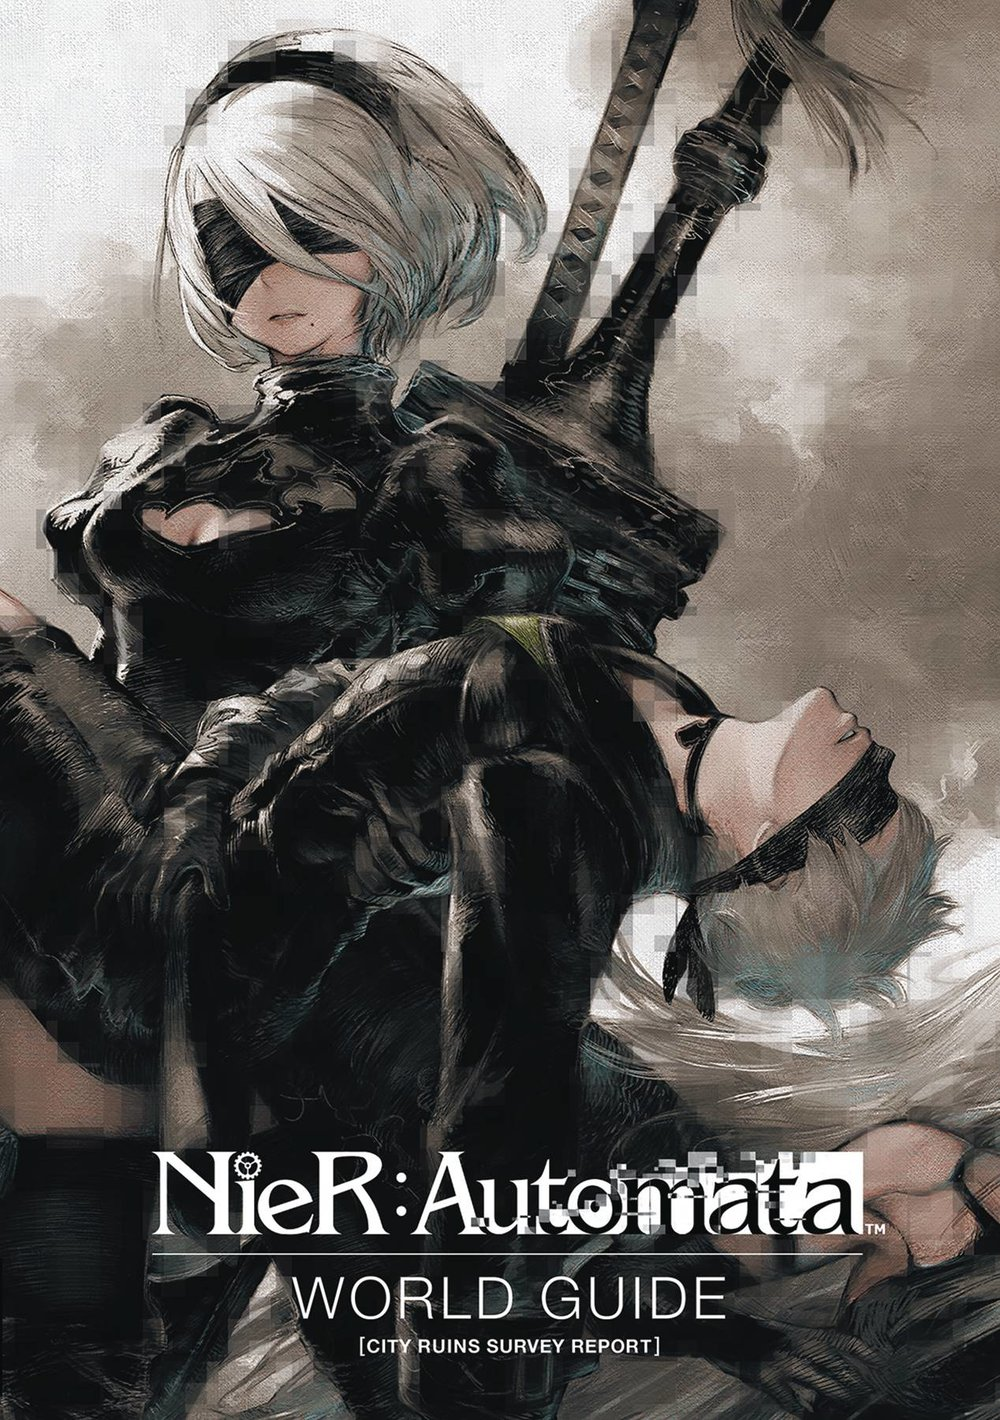 NIER HC AUTOMATA WORLD GUIDE.jpg